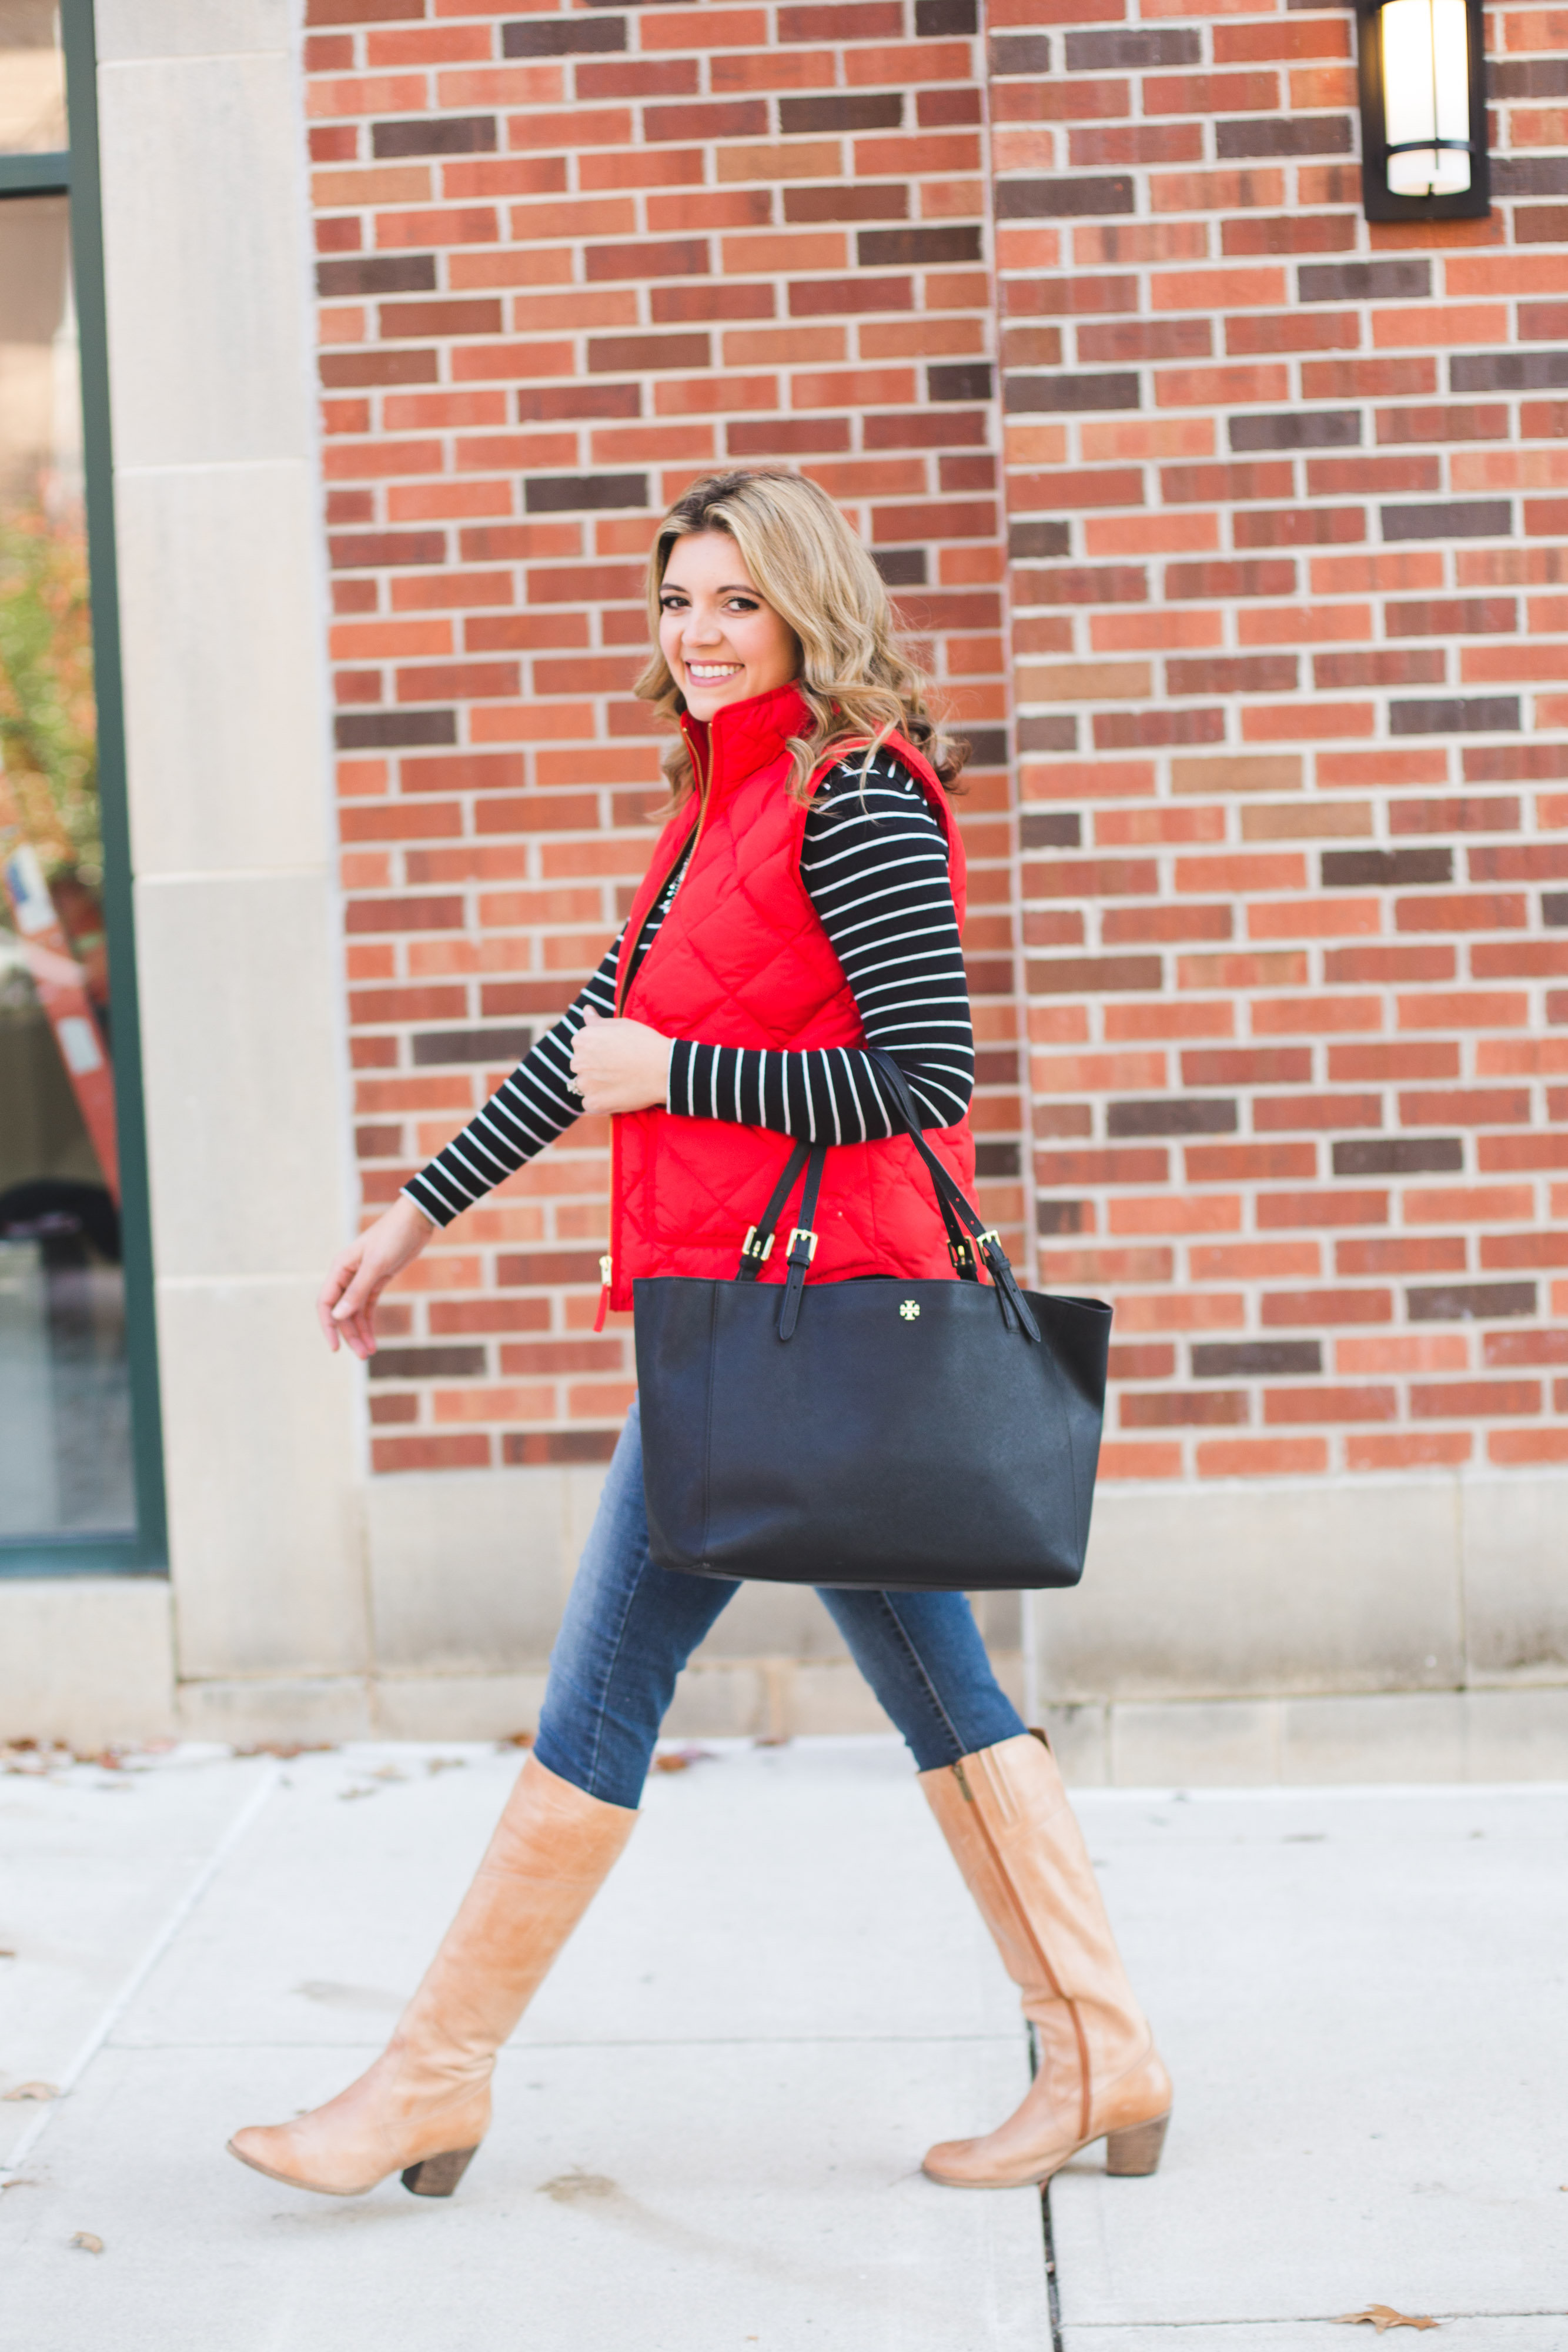 holiday shopping style - red puffer vest, stripe tee, skinny jeans and tan heeled boots | www.bylaurenm.com